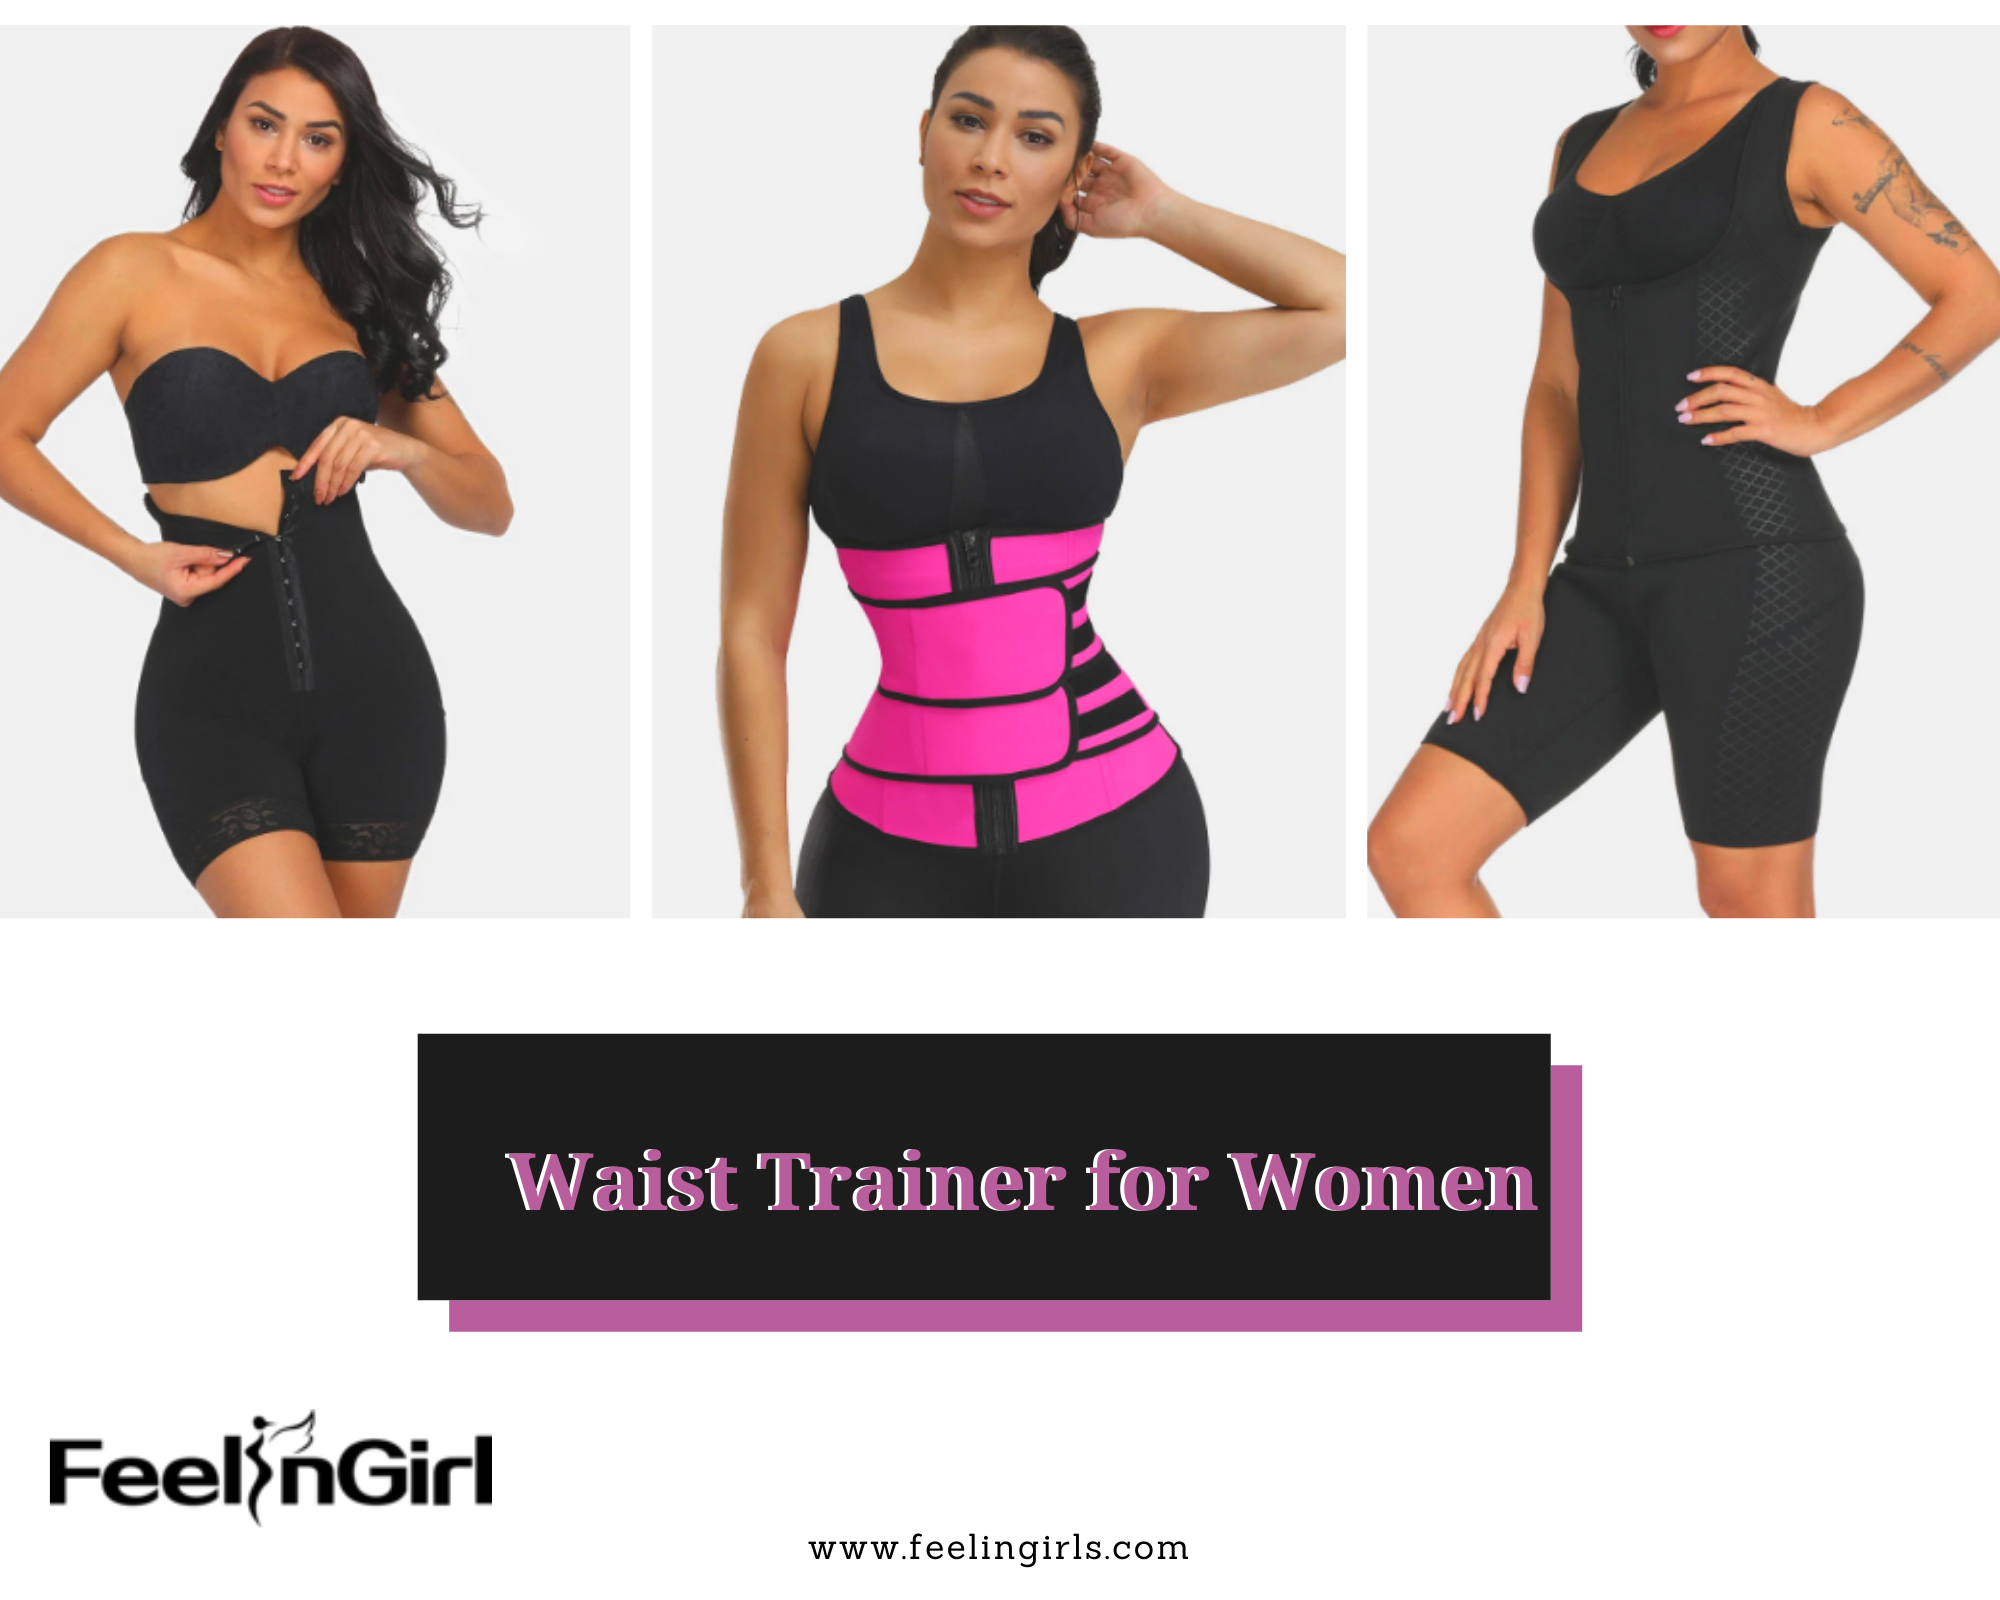 Shop Waist Trainer for Women